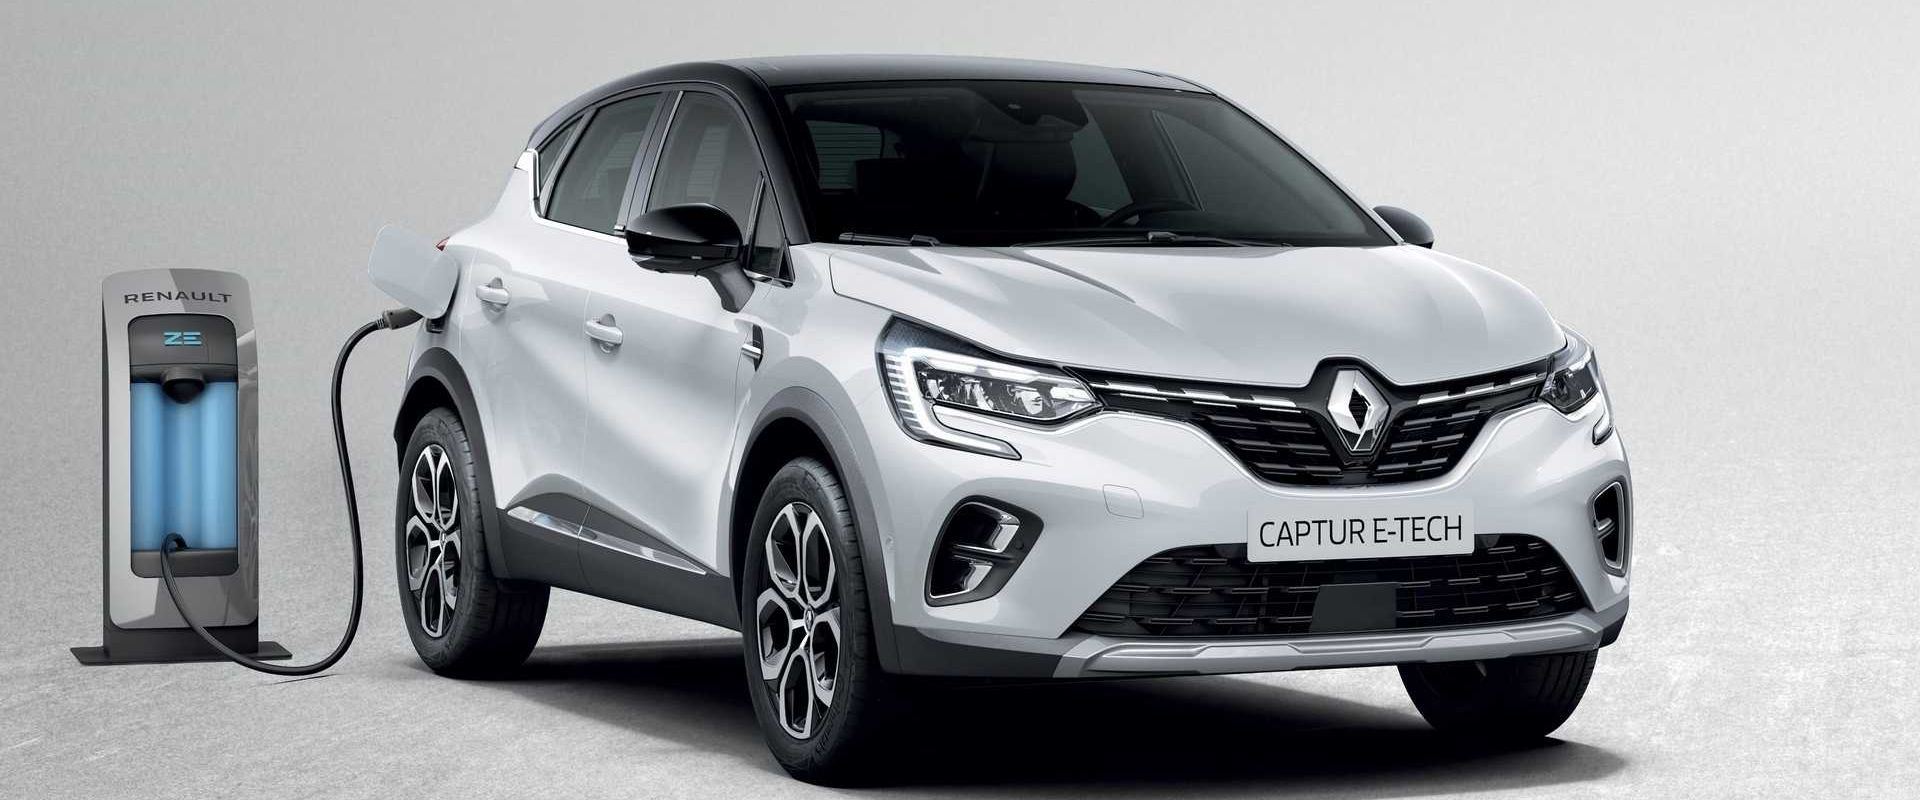 /assets/components/phpthumbof/cache/renault-clio-e-tech-y-captur-e-tech-plug-in.9a99e085fa421327577ac11d57ba8ea3.jpg